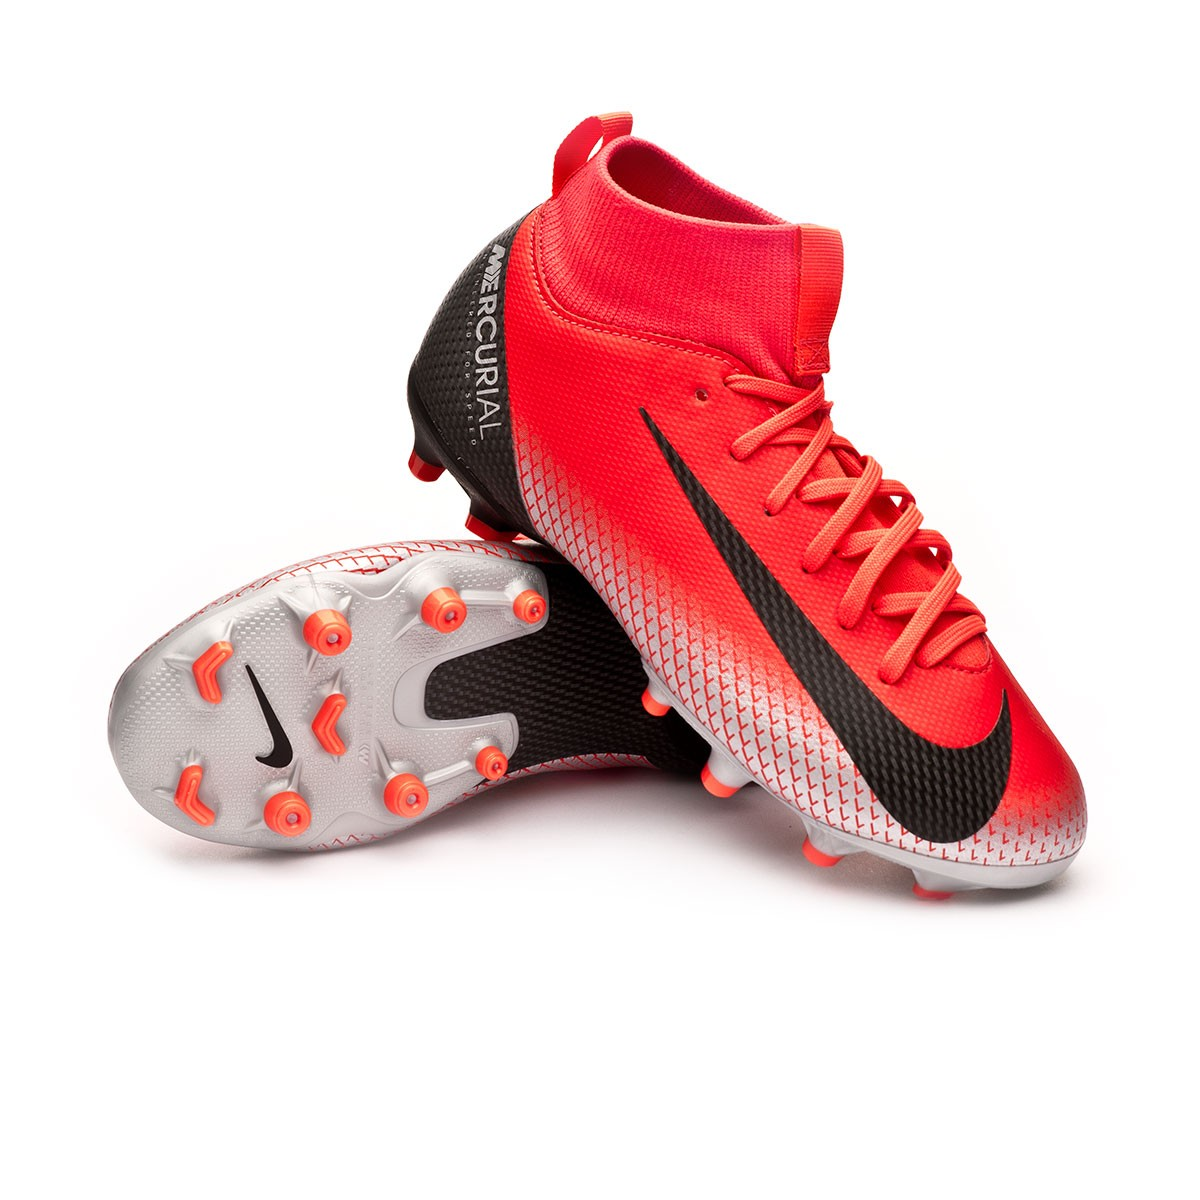 ce7f71eb0a Scarpe Nike Mercurial Superfly VI Academy CR7 MG Junior Bright  crimson-Black-Chrome-Dark grey - Negozio di calcio Fútbol Emotion